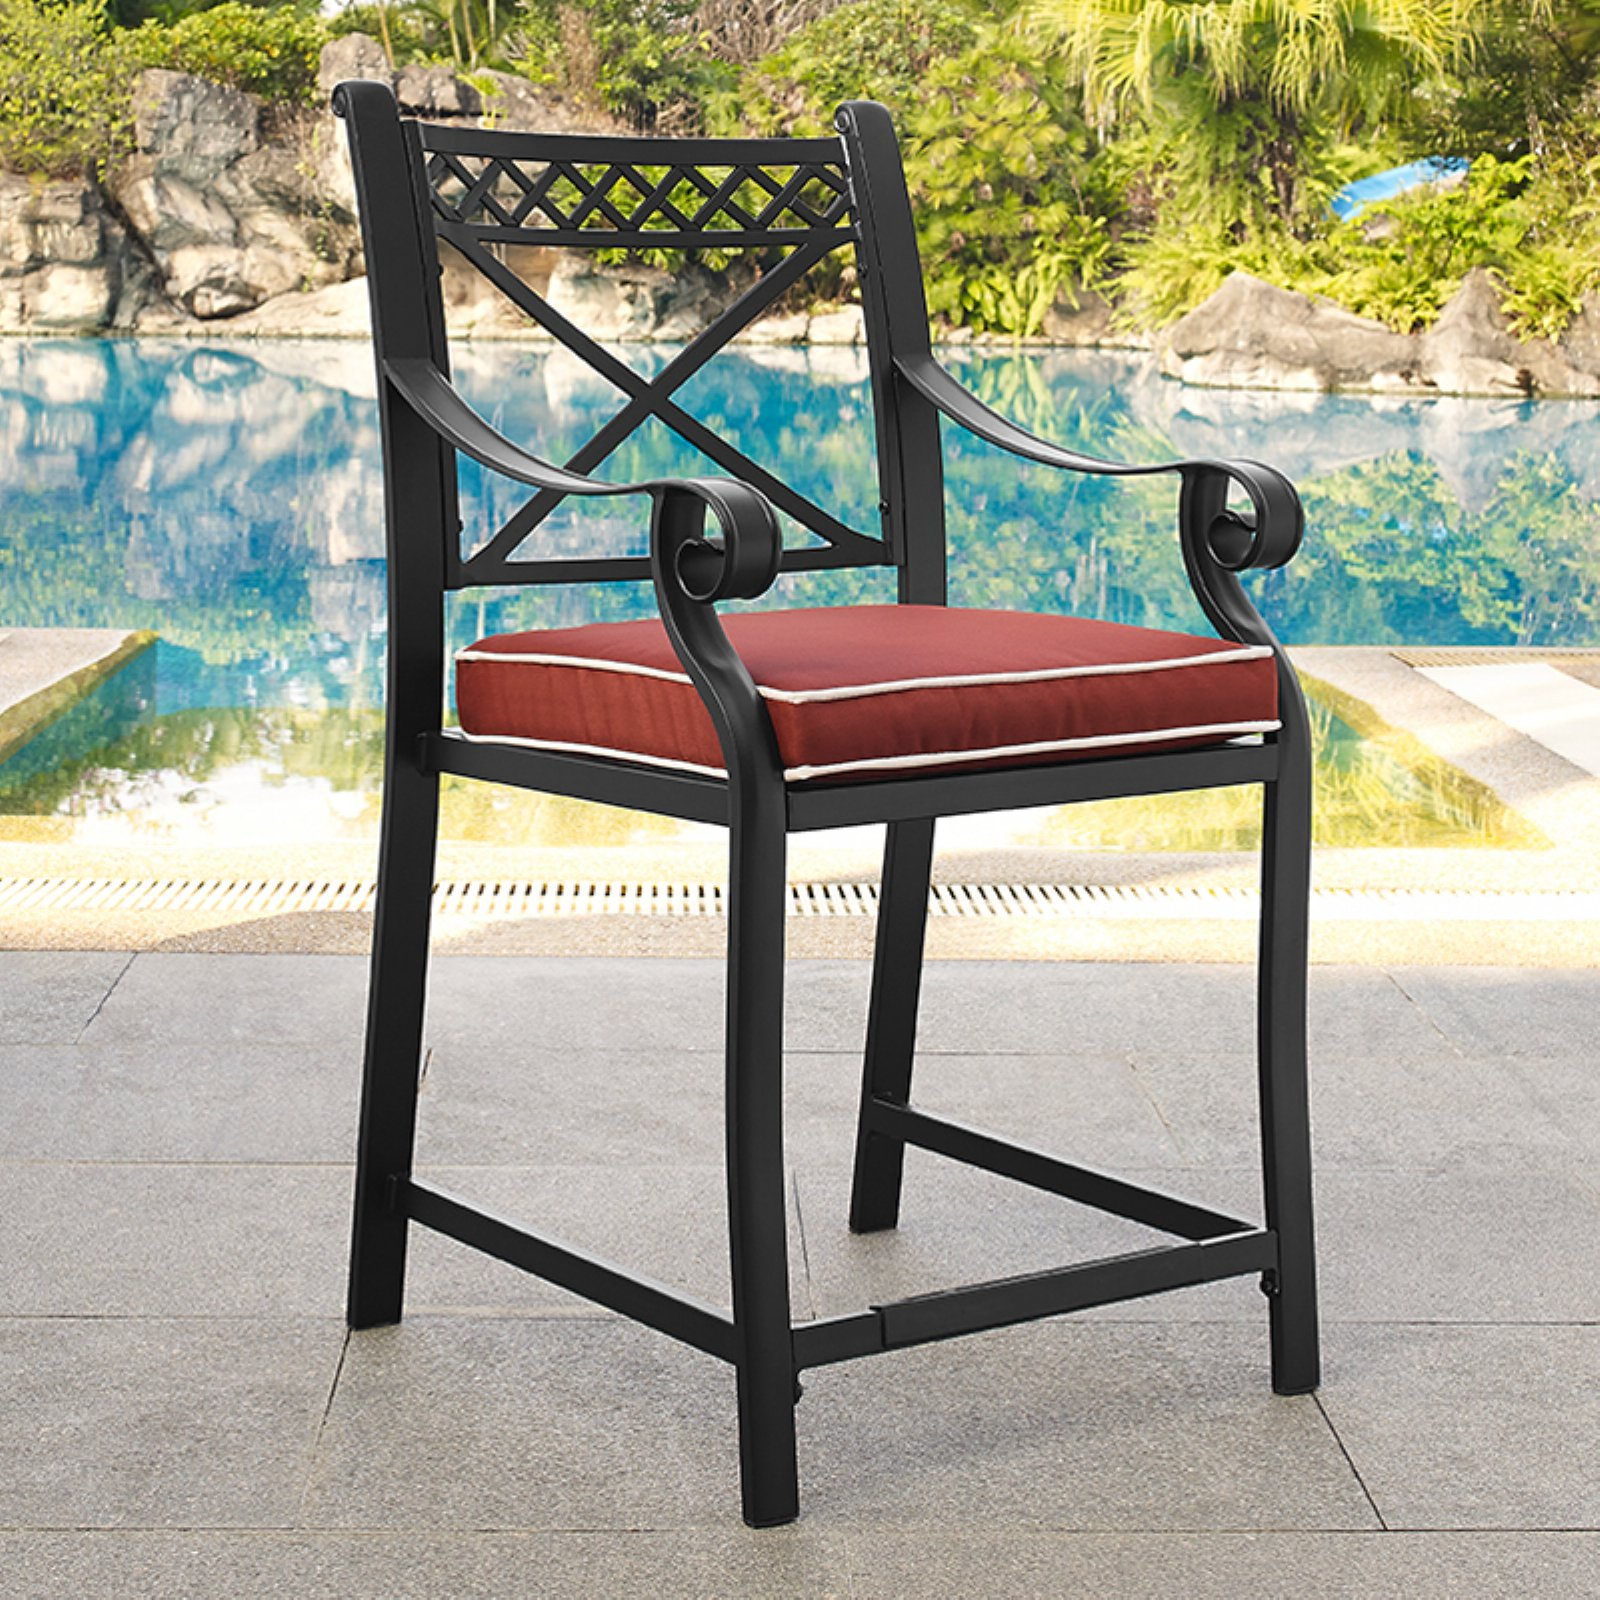 Crosley Portofino Cast Aluminum Bar Height Stools, Set of 2, Charcoal Black Finish with Sangria Cushions